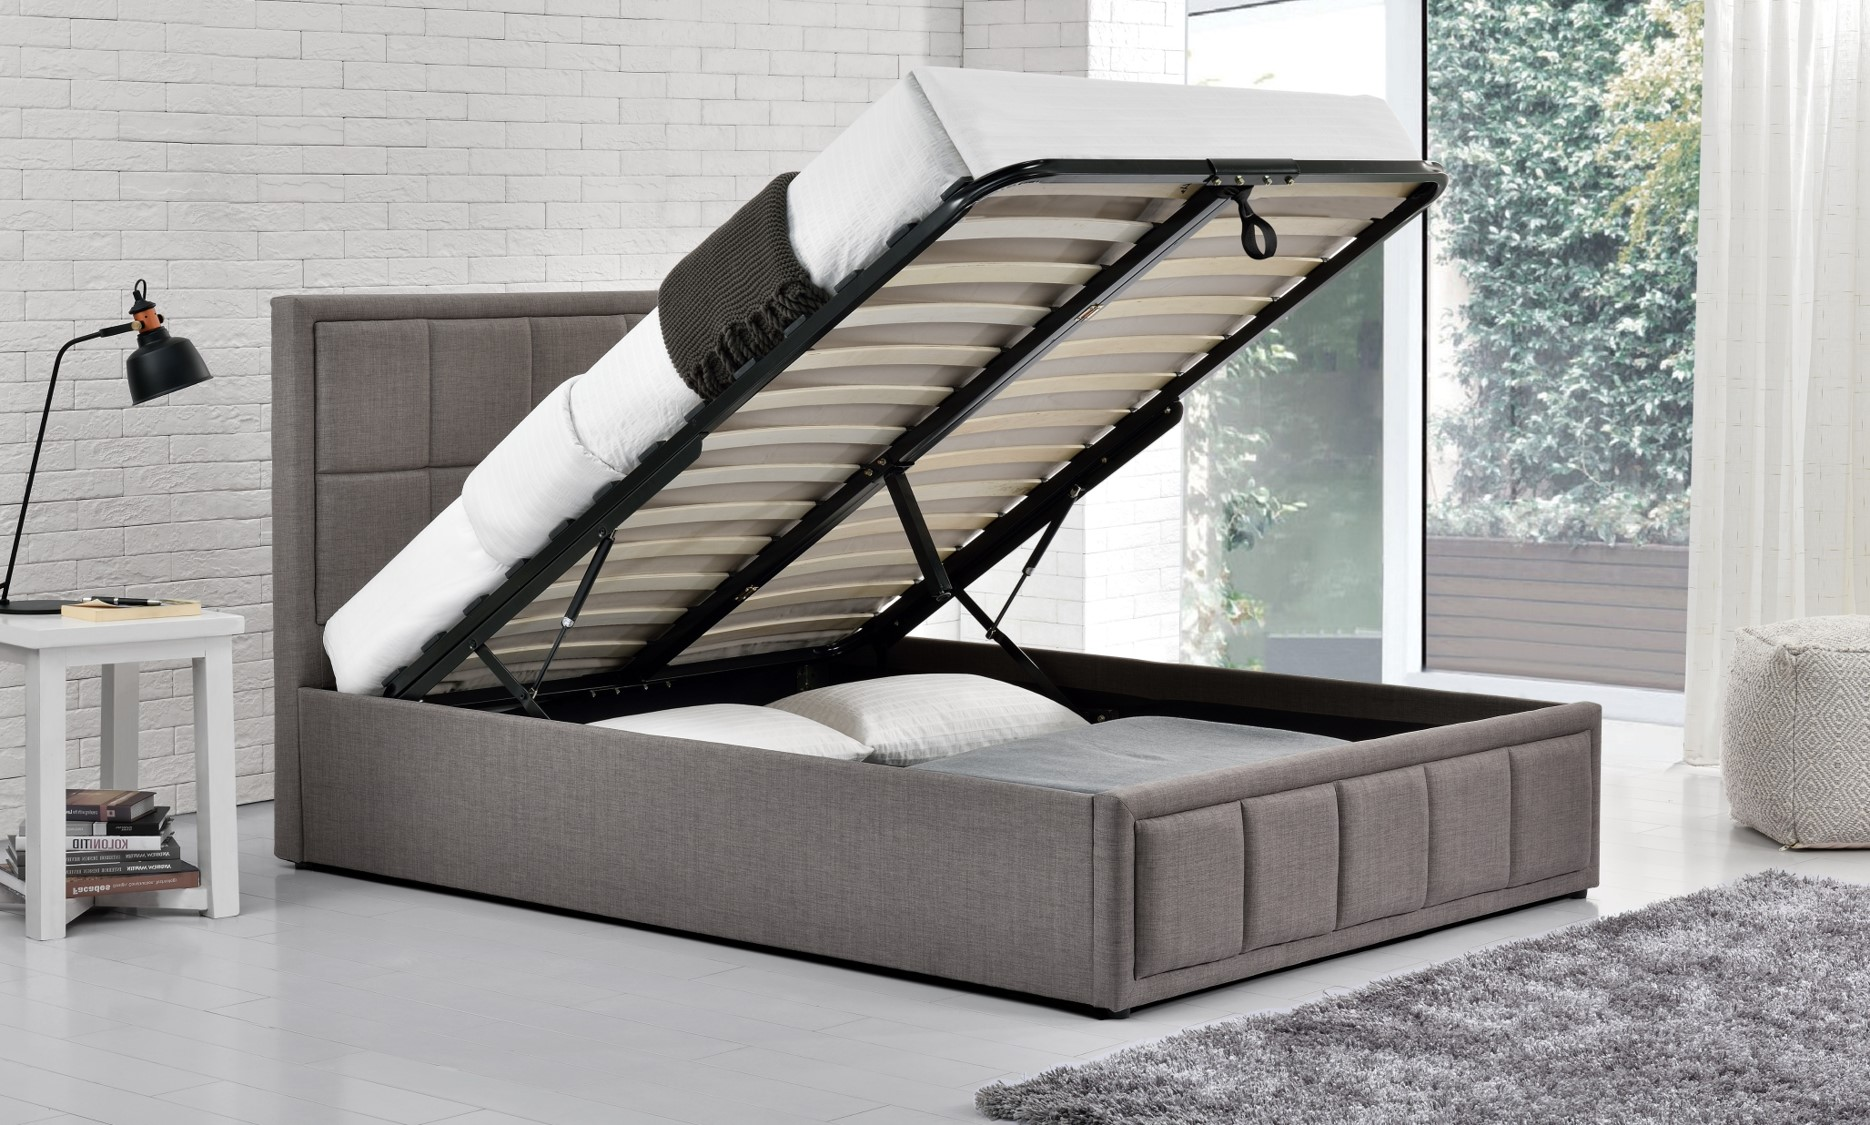 Birlea Hannover 4ft6 Double Ottoman Bed Frame in Grey £299